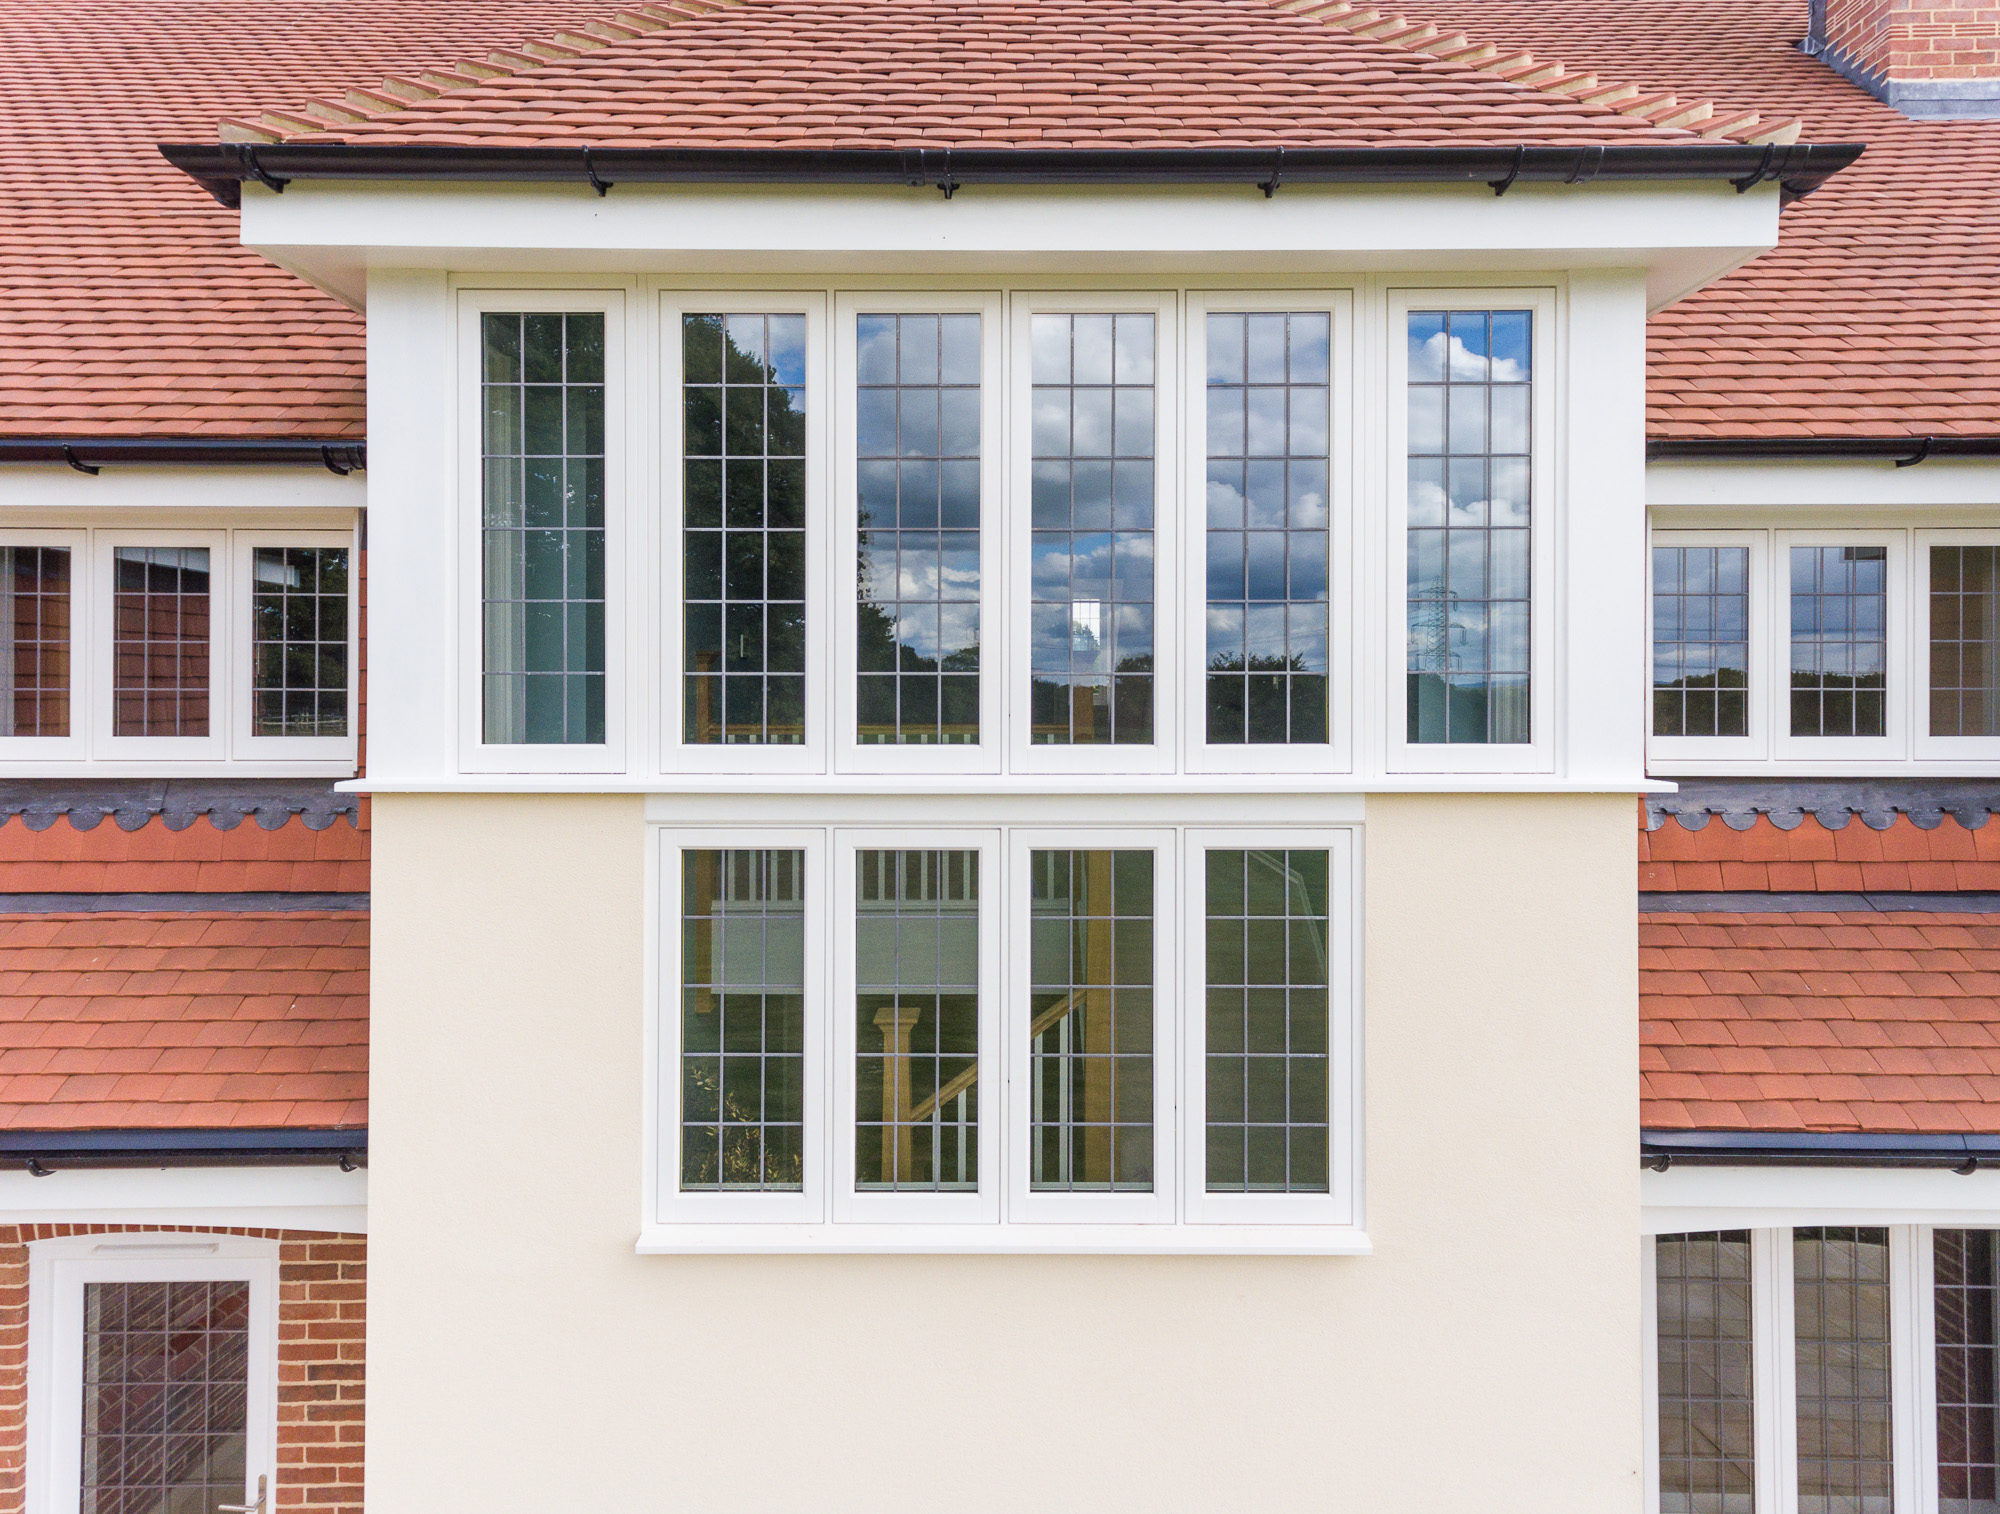 jonathan bond photography, aerial drone view of windows of residential house